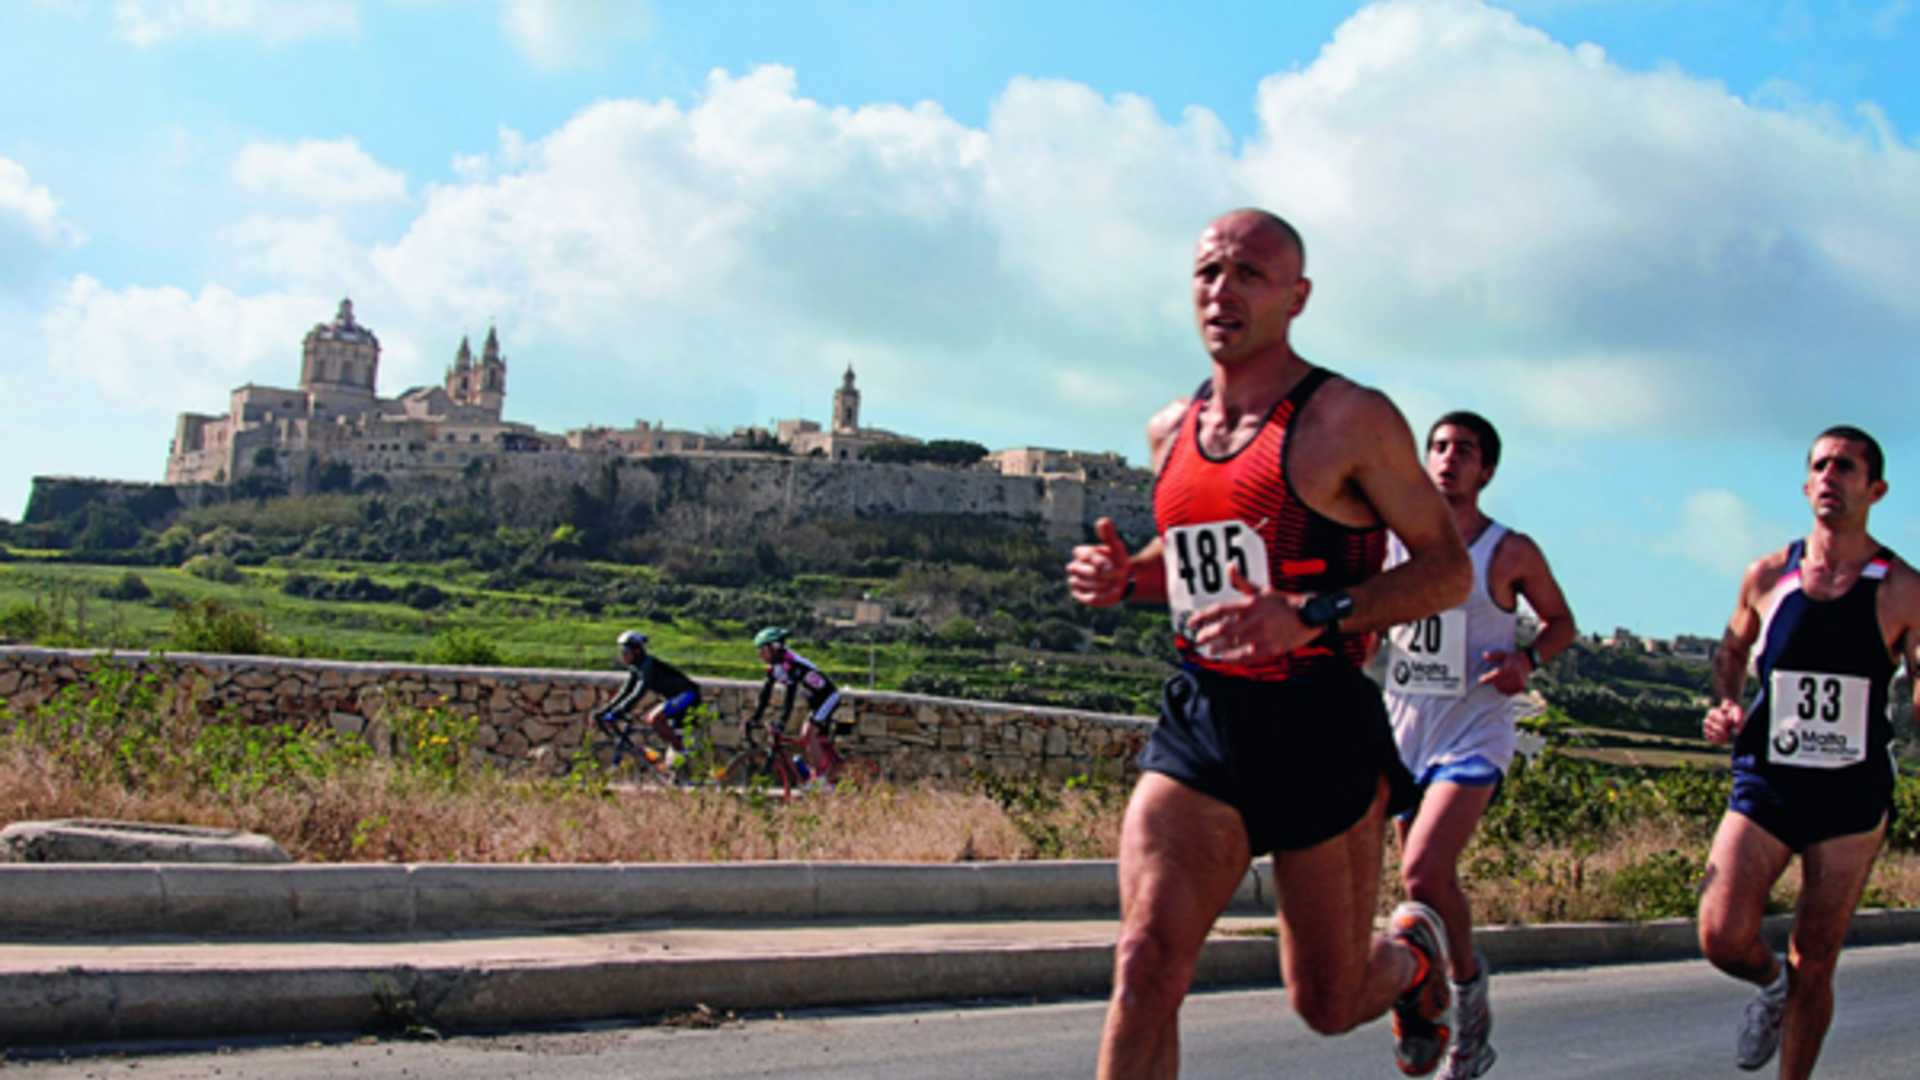 The Malta Marathon